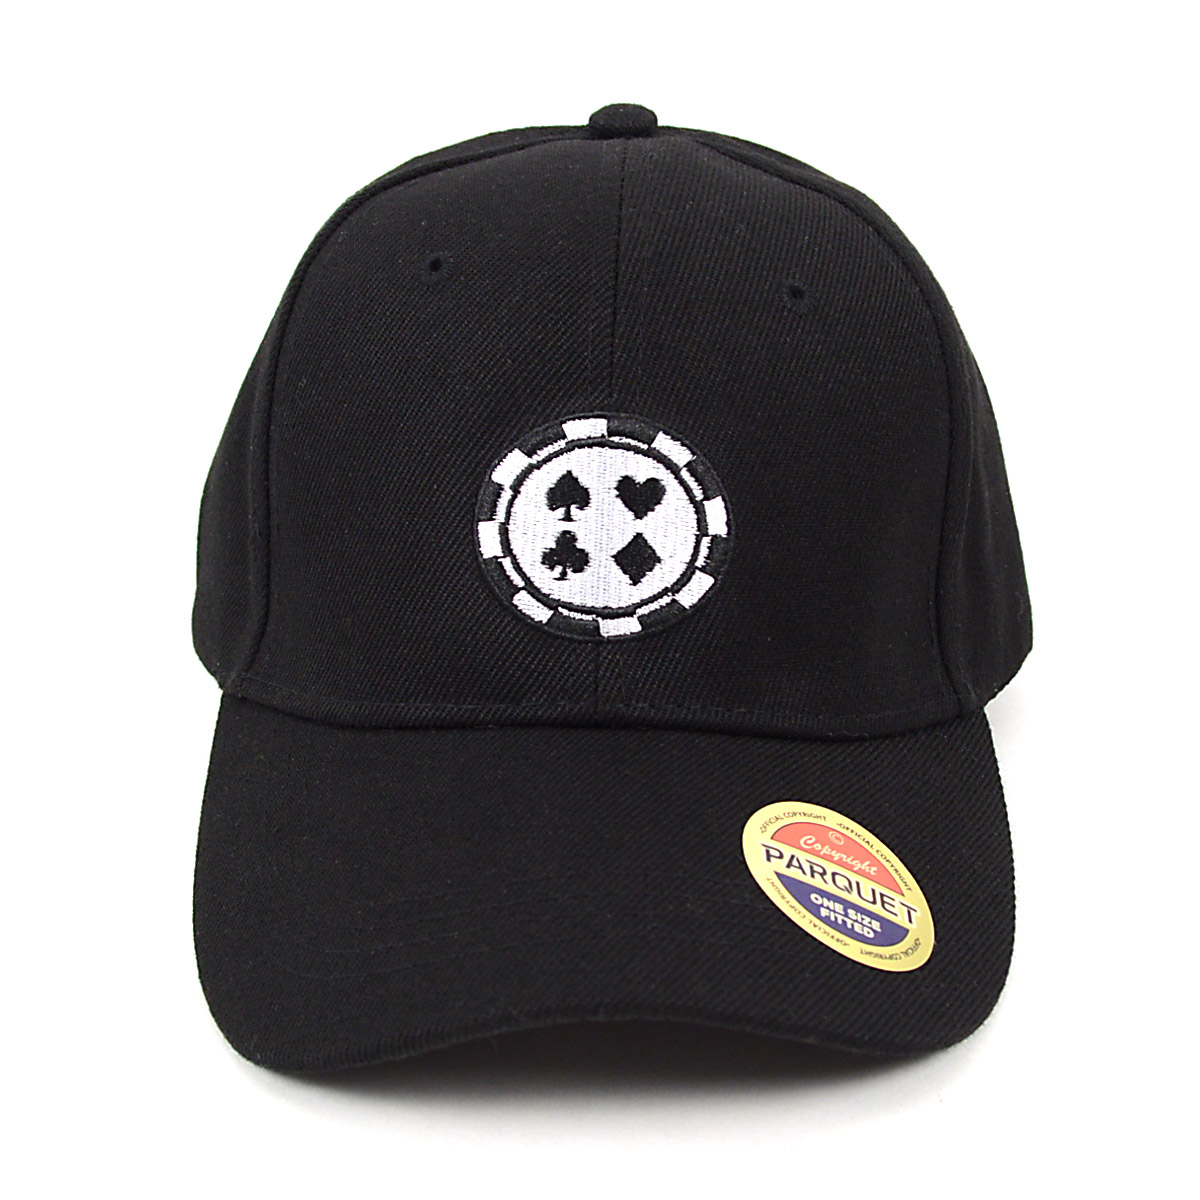 Four CARD Suits Black Embroidered BASEBALL Cap